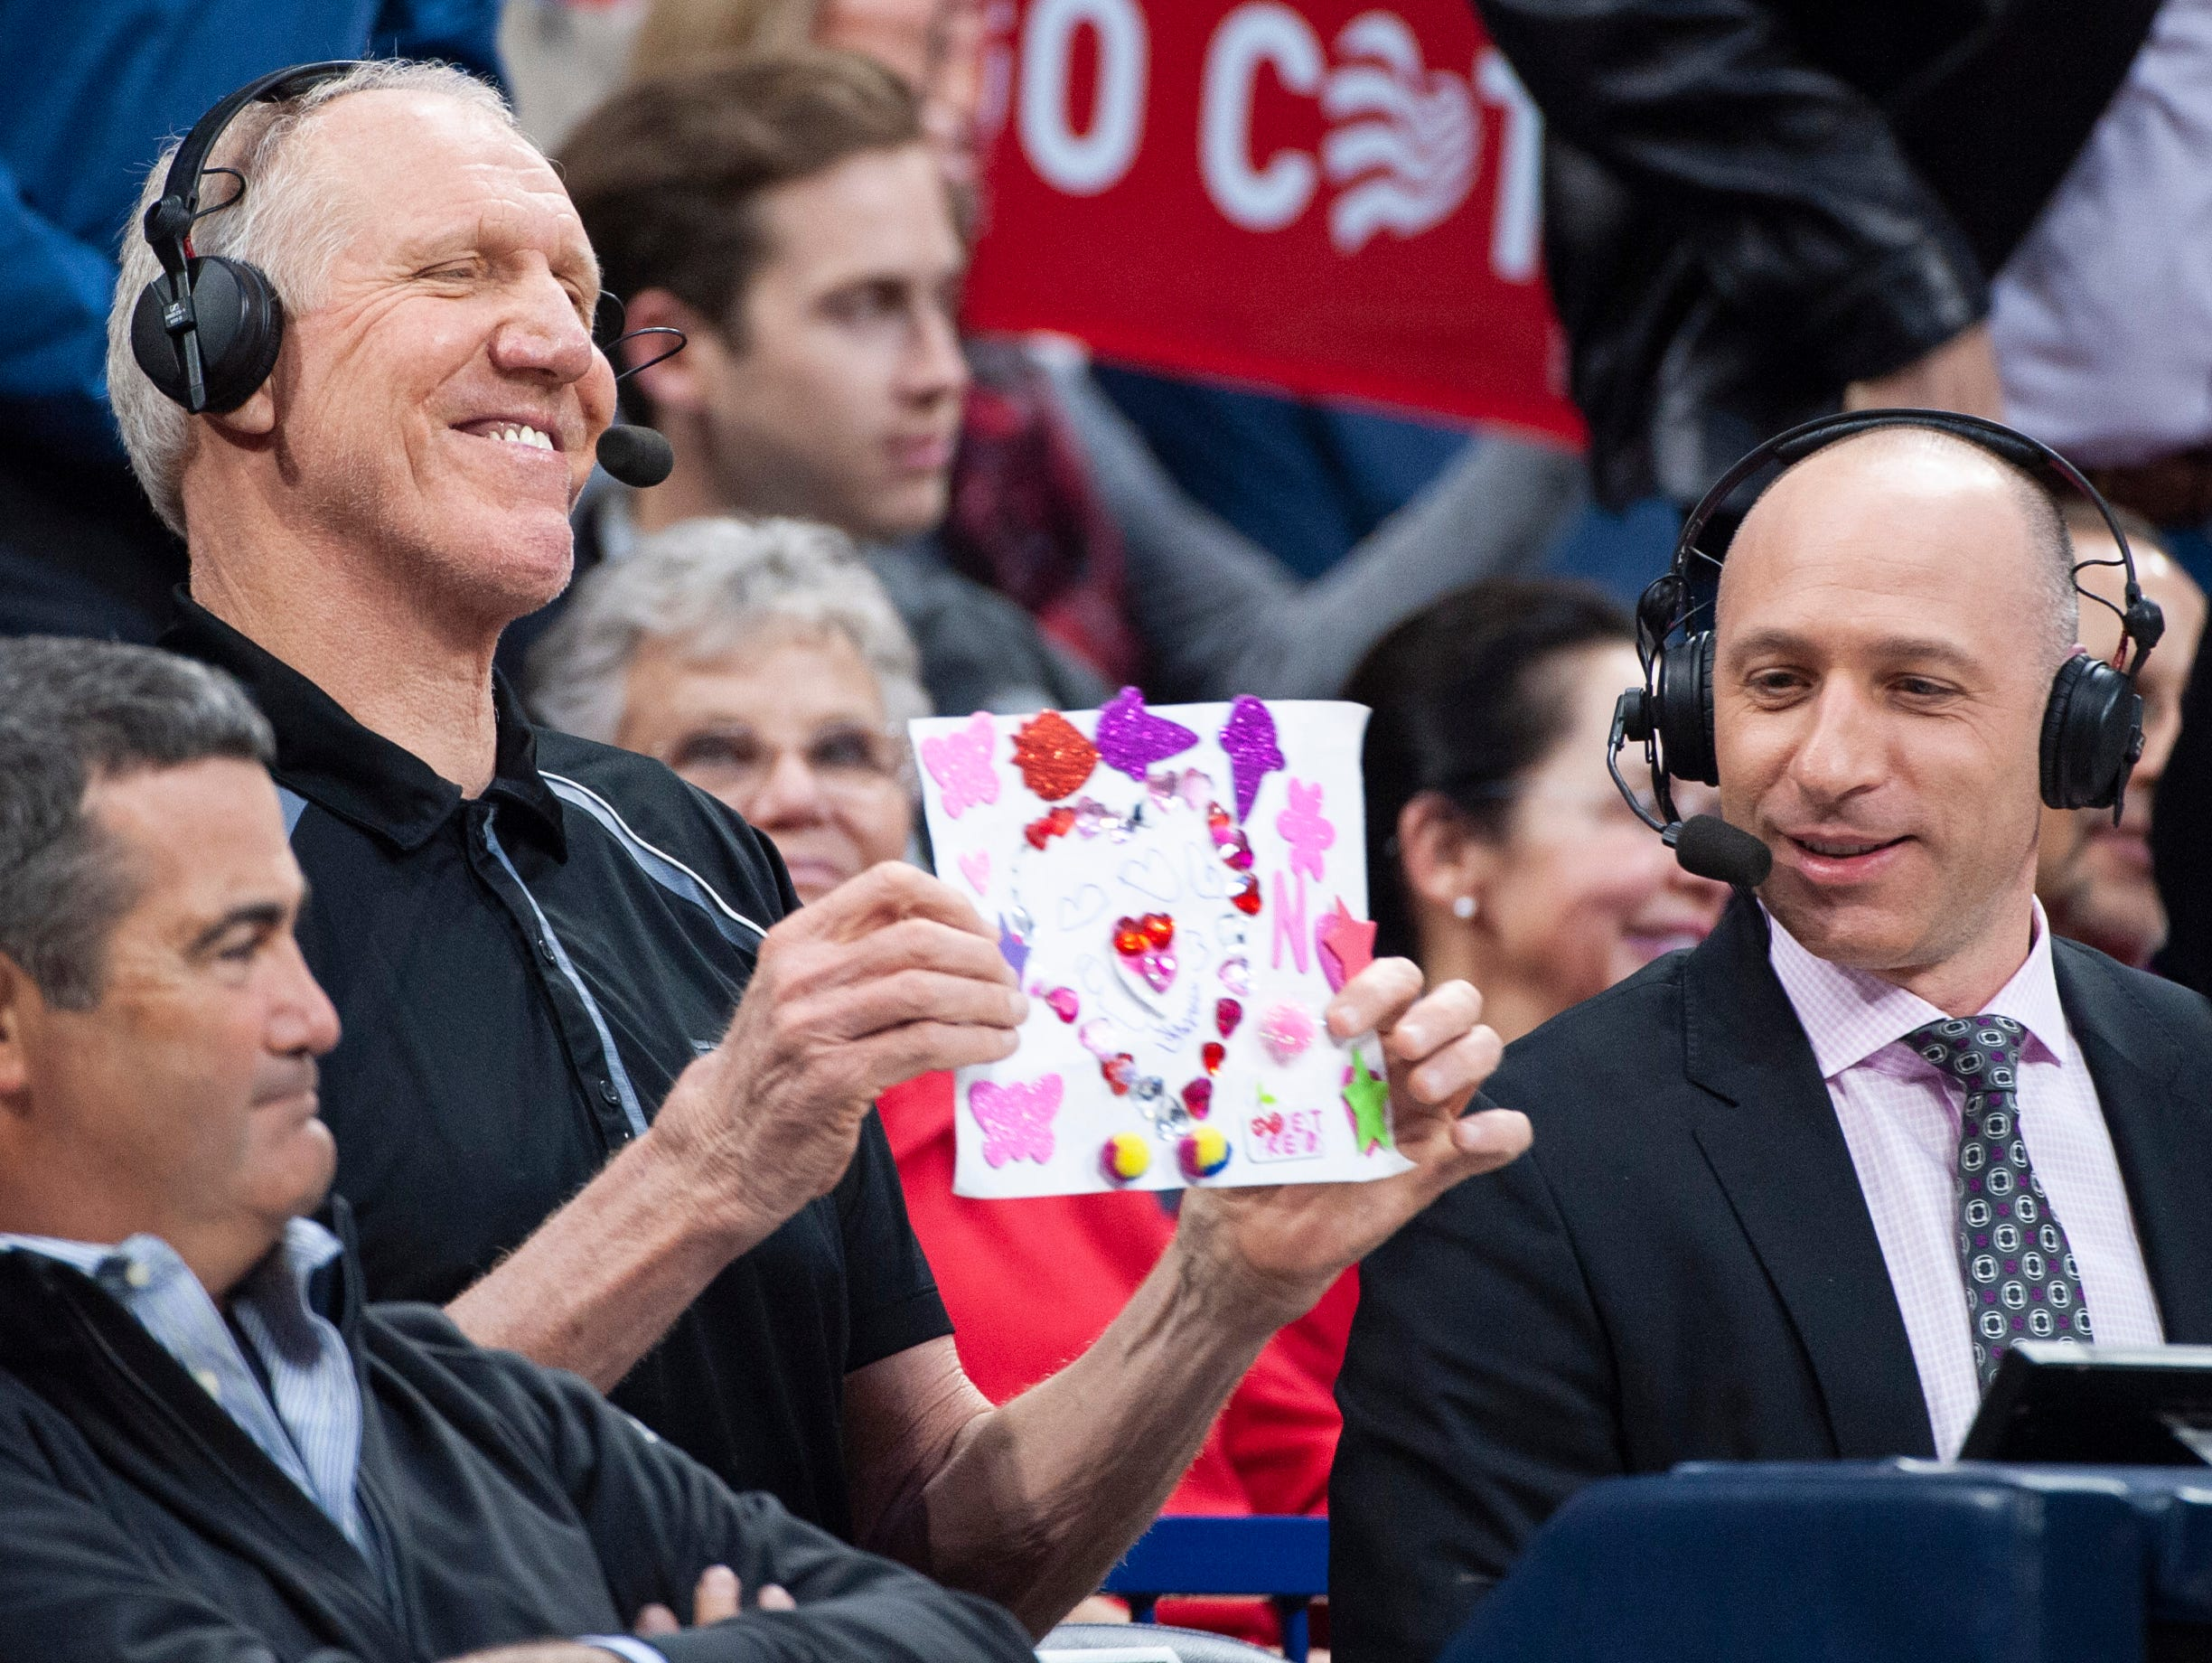 Feb. 7: ESPN's Bill Walton (left) and Dave Pasch (right) hold up drawings for the camera as the Arizona Wildcats play the Washington Huskies during the first half at McKale Center.